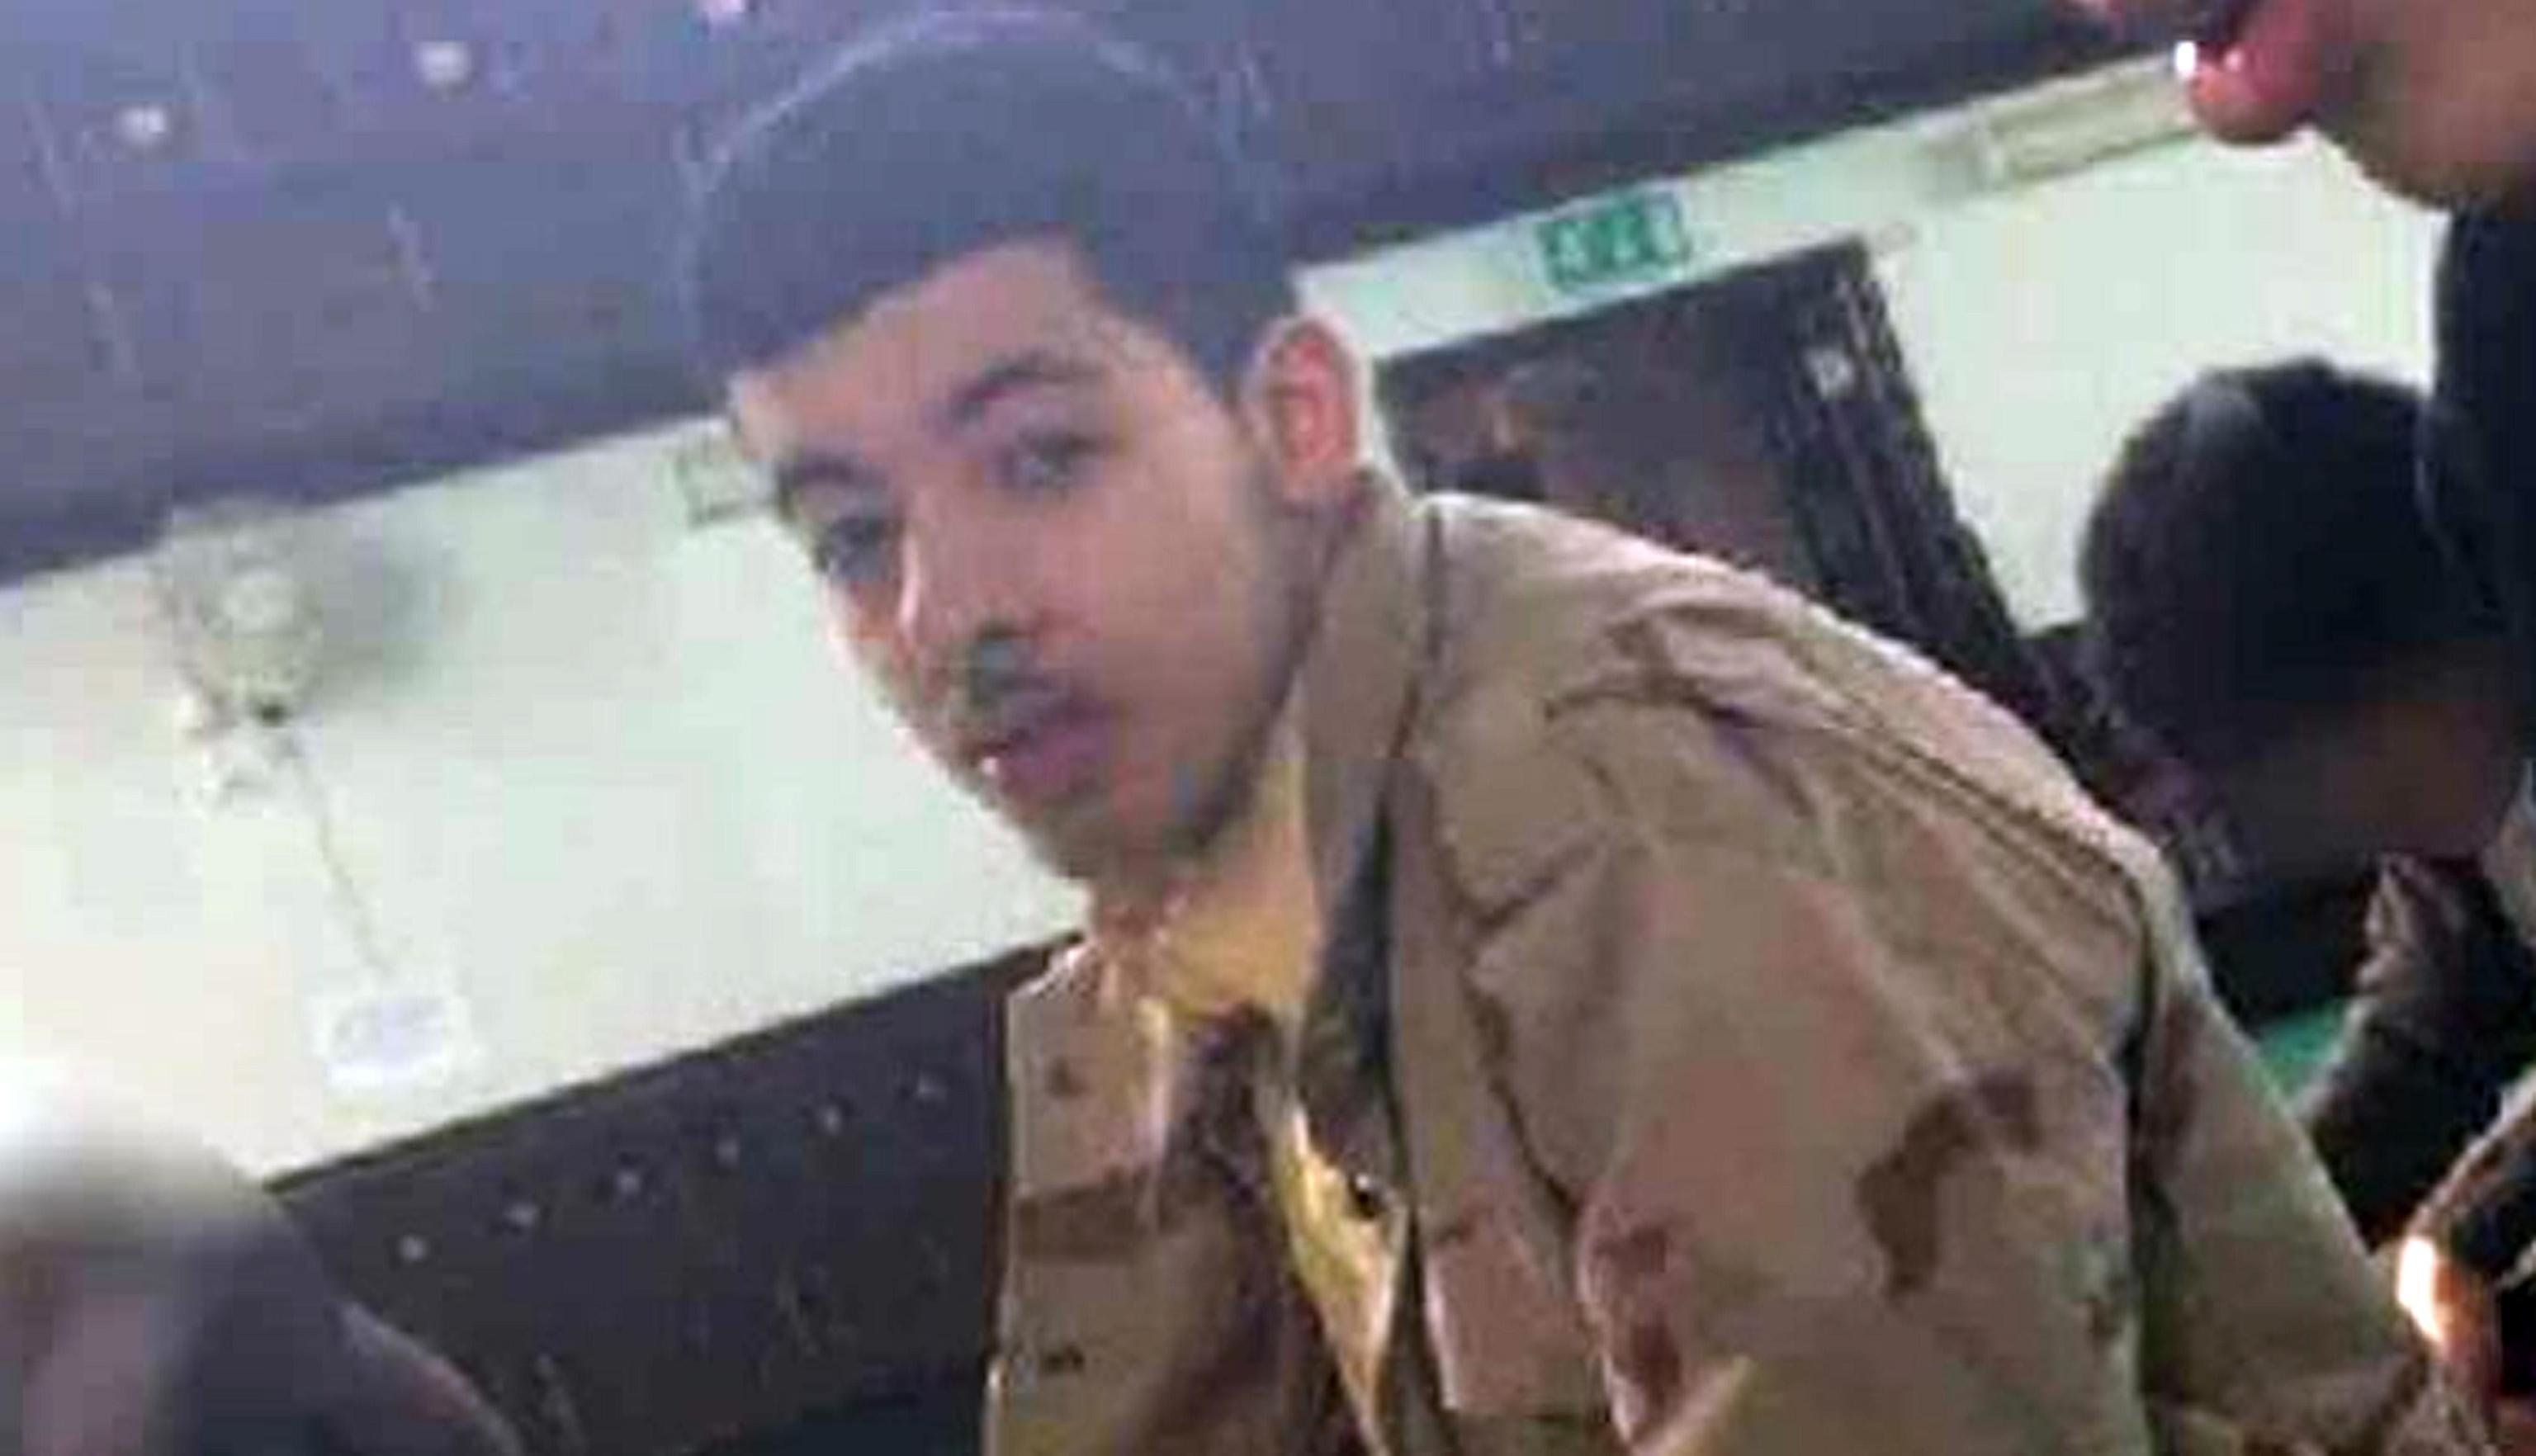 Salman Abedi had traveled to Libya, where he had family, and Syria.